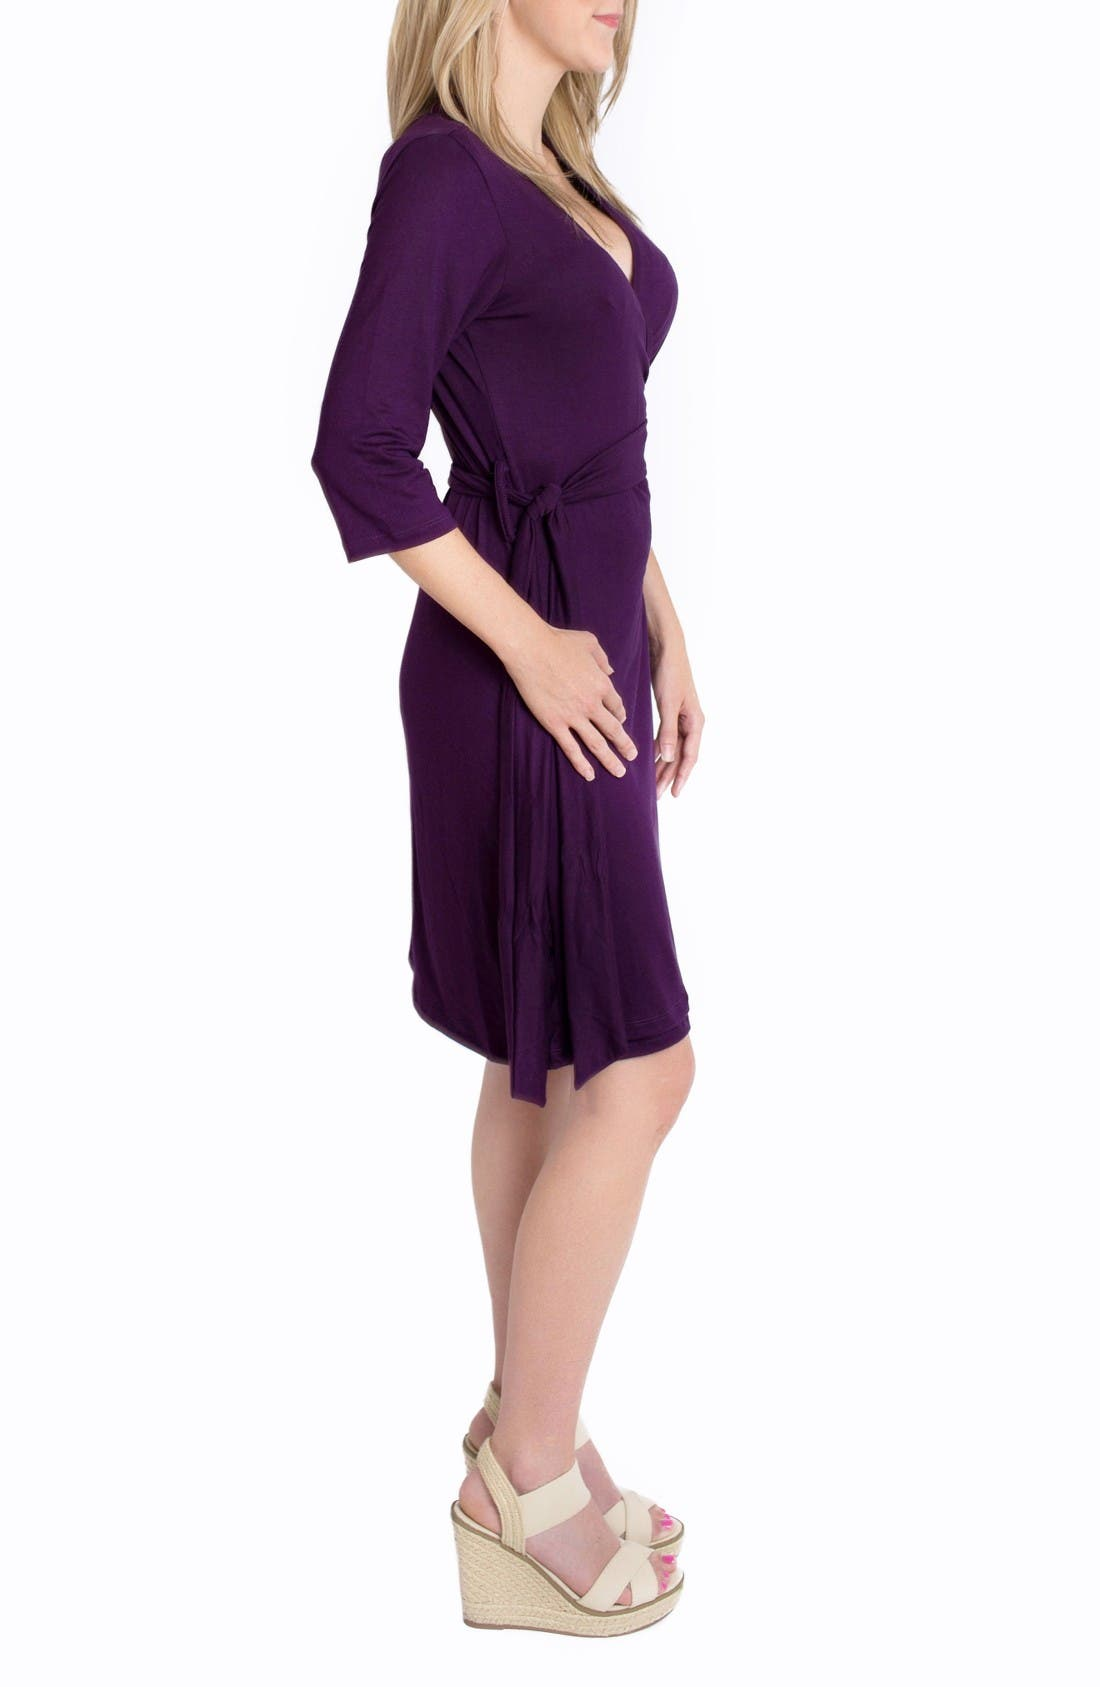 'Whimsical' Nursing Wrap Dress,                             Alternate thumbnail 3, color,                             Plum